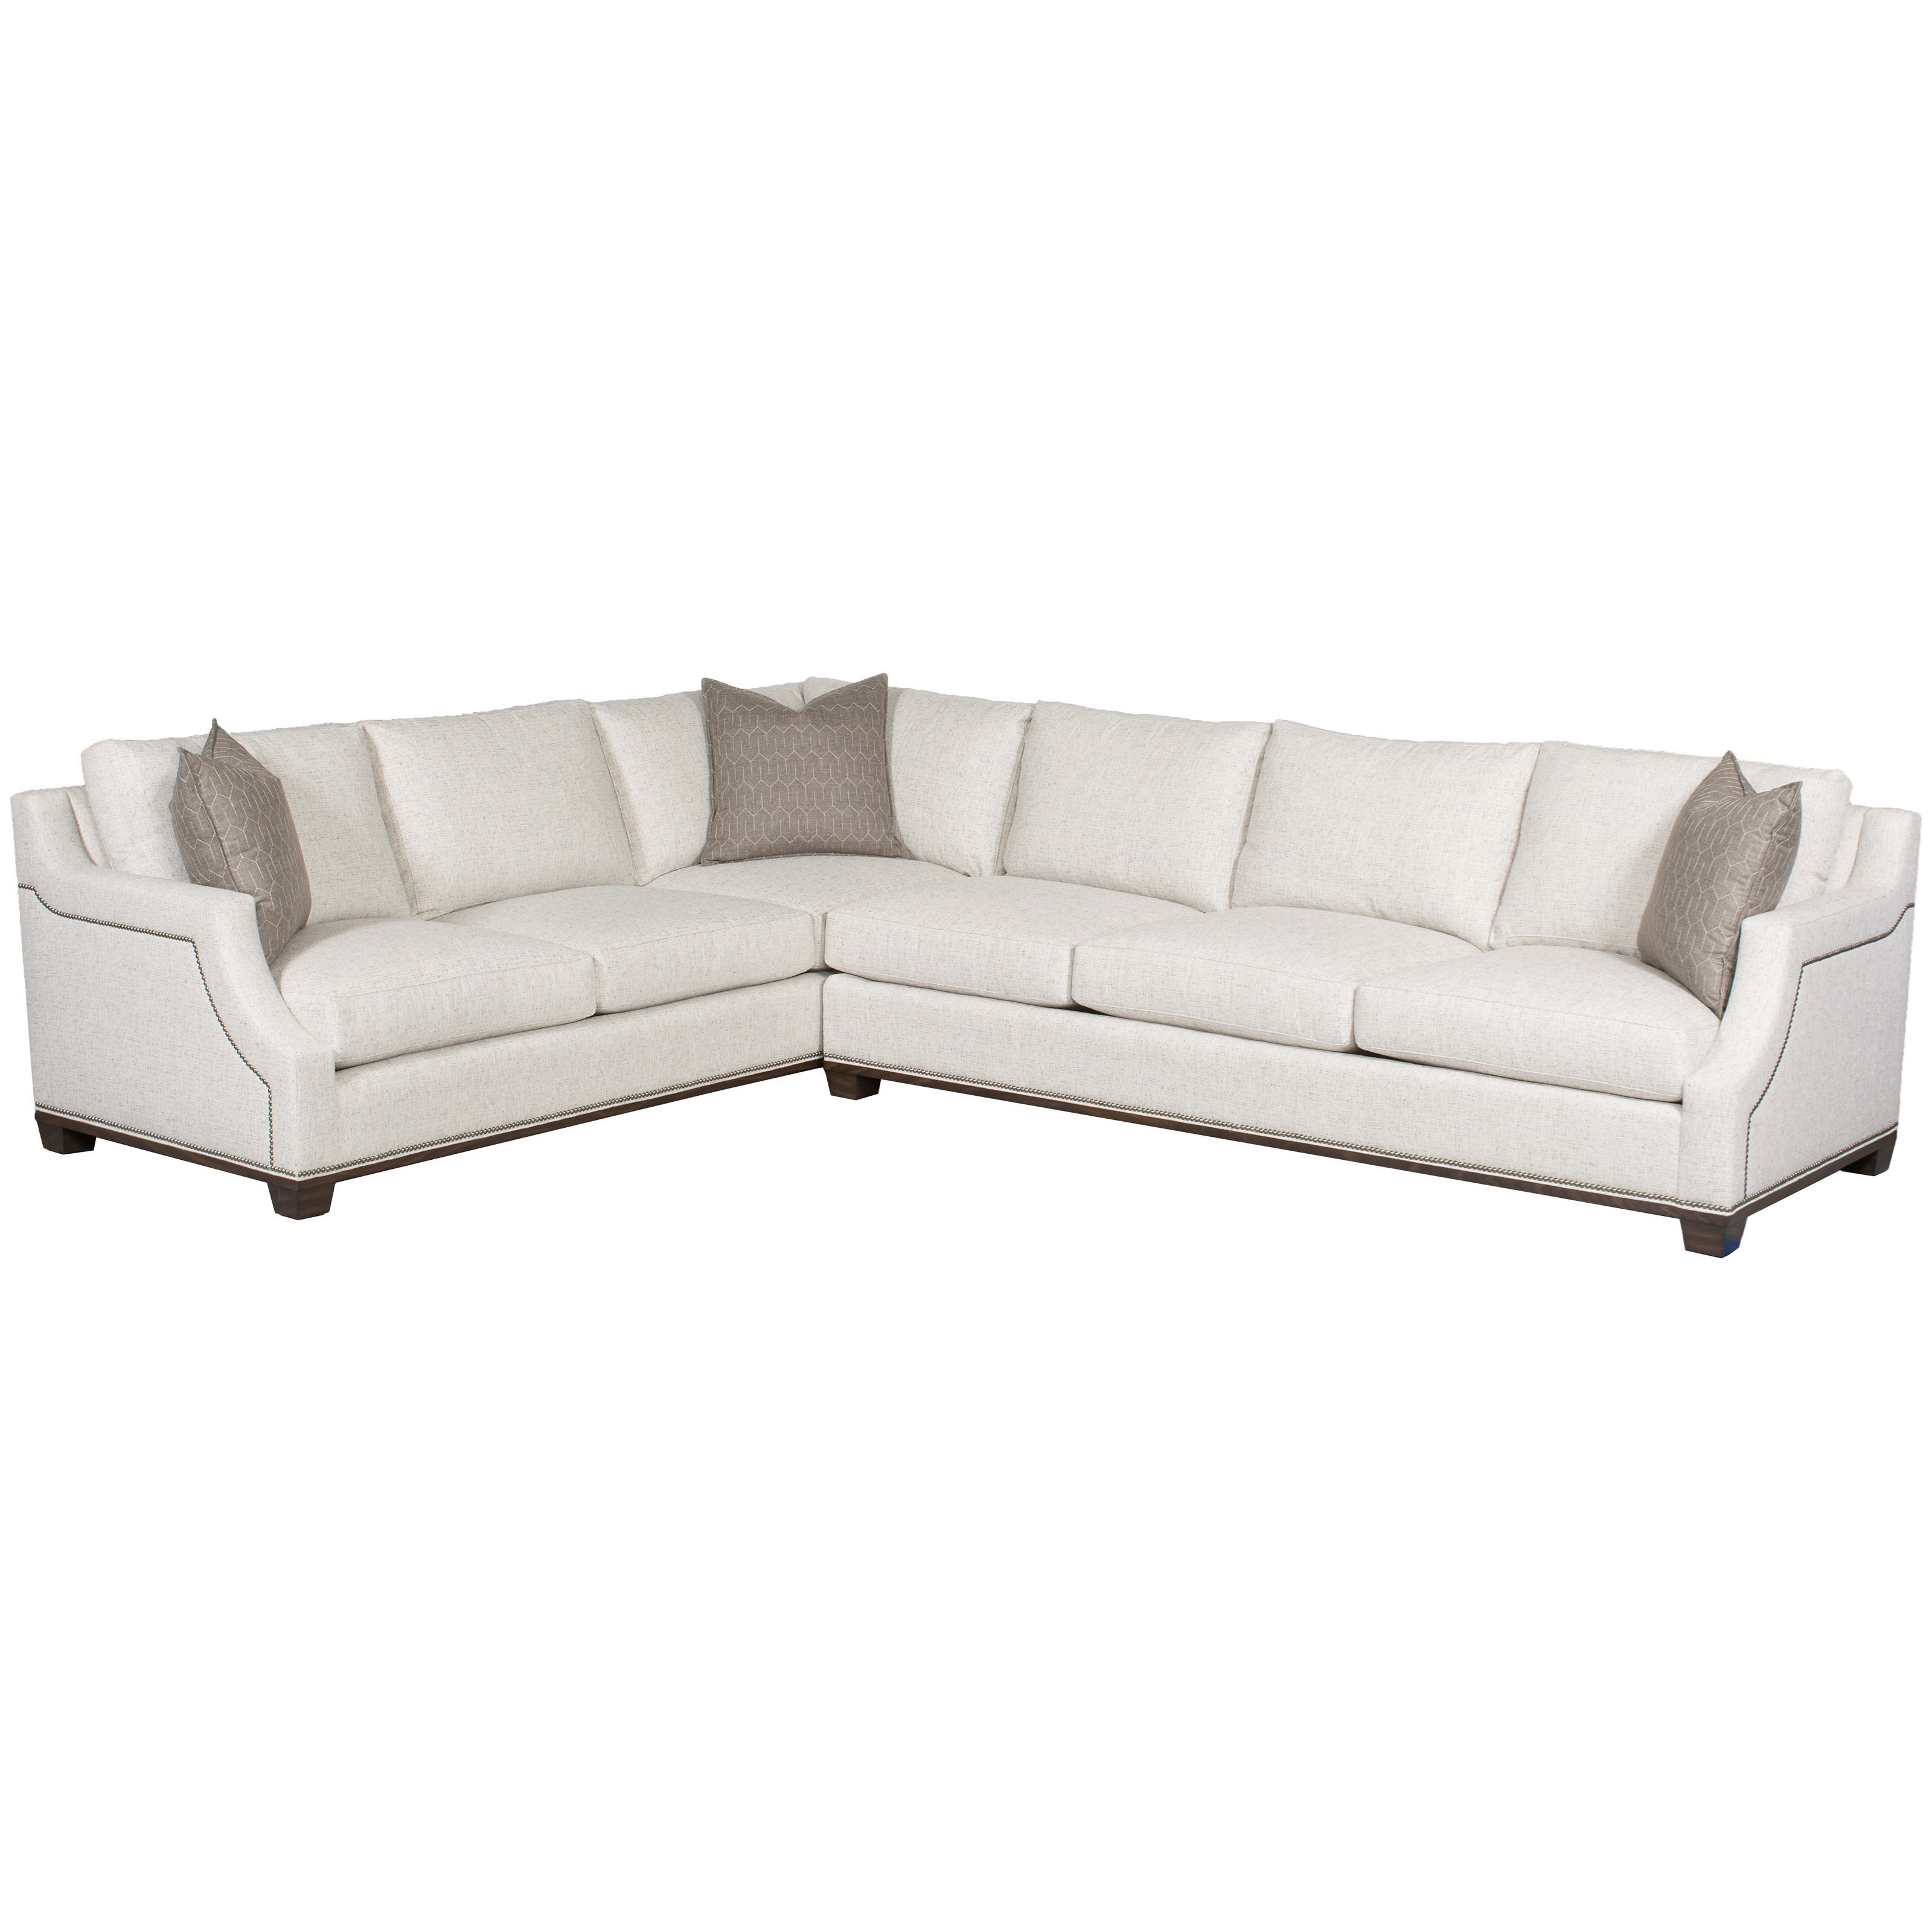 Vanguard Furniture Michael Weiss   Abingdon2 Pc Customizable Sectional Sofa  ...